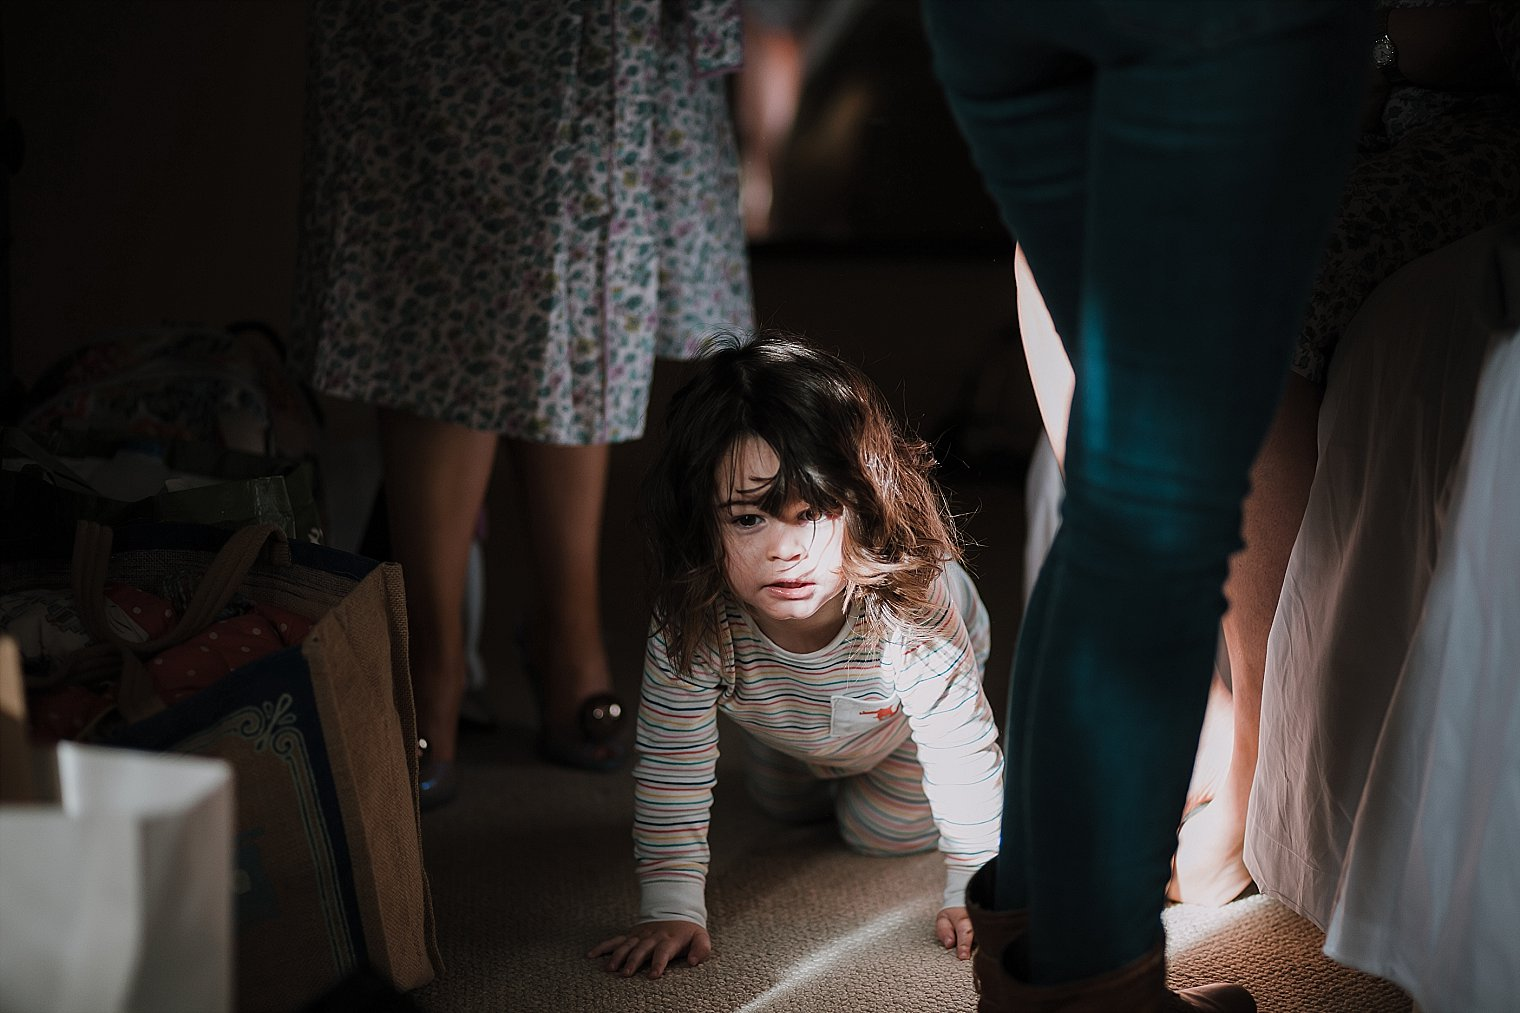 Brides daughter crawling on floor